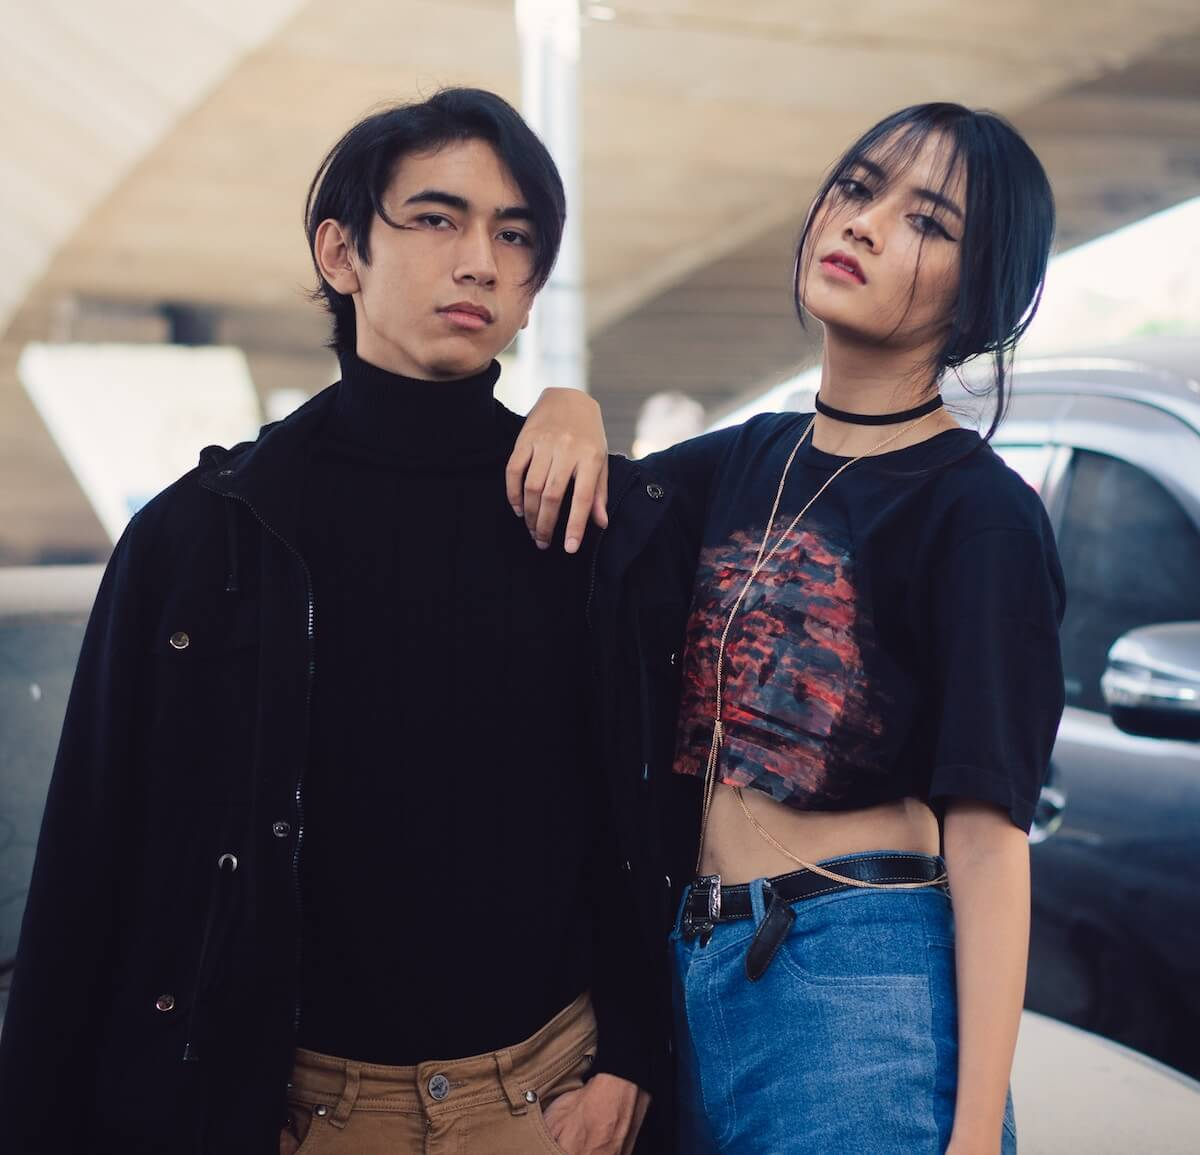 unsplash-riki-cool-couple-man-woman-in-front-of-cars